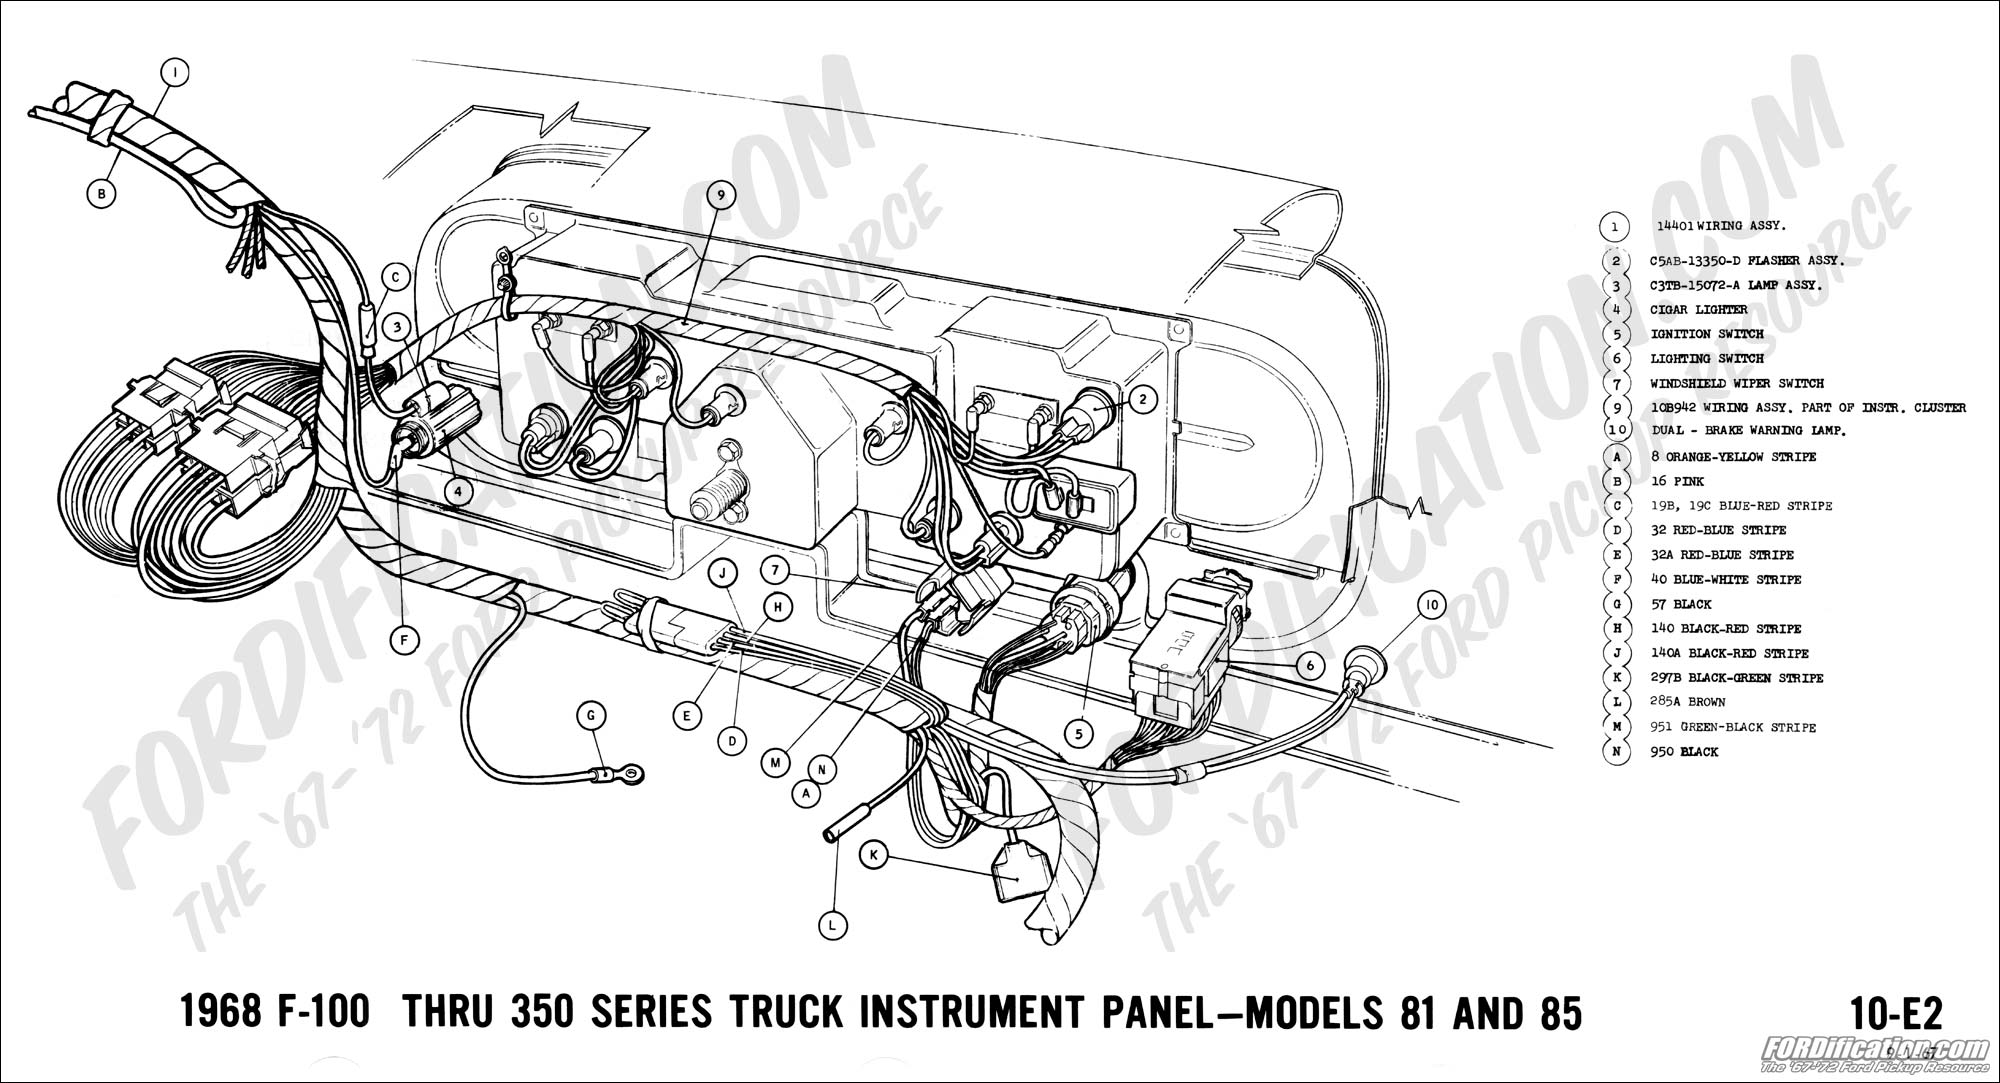 68 04 ford truck technical drawings and schematics section h wiring 71 mustang wiring diagram at bayanpartner.co